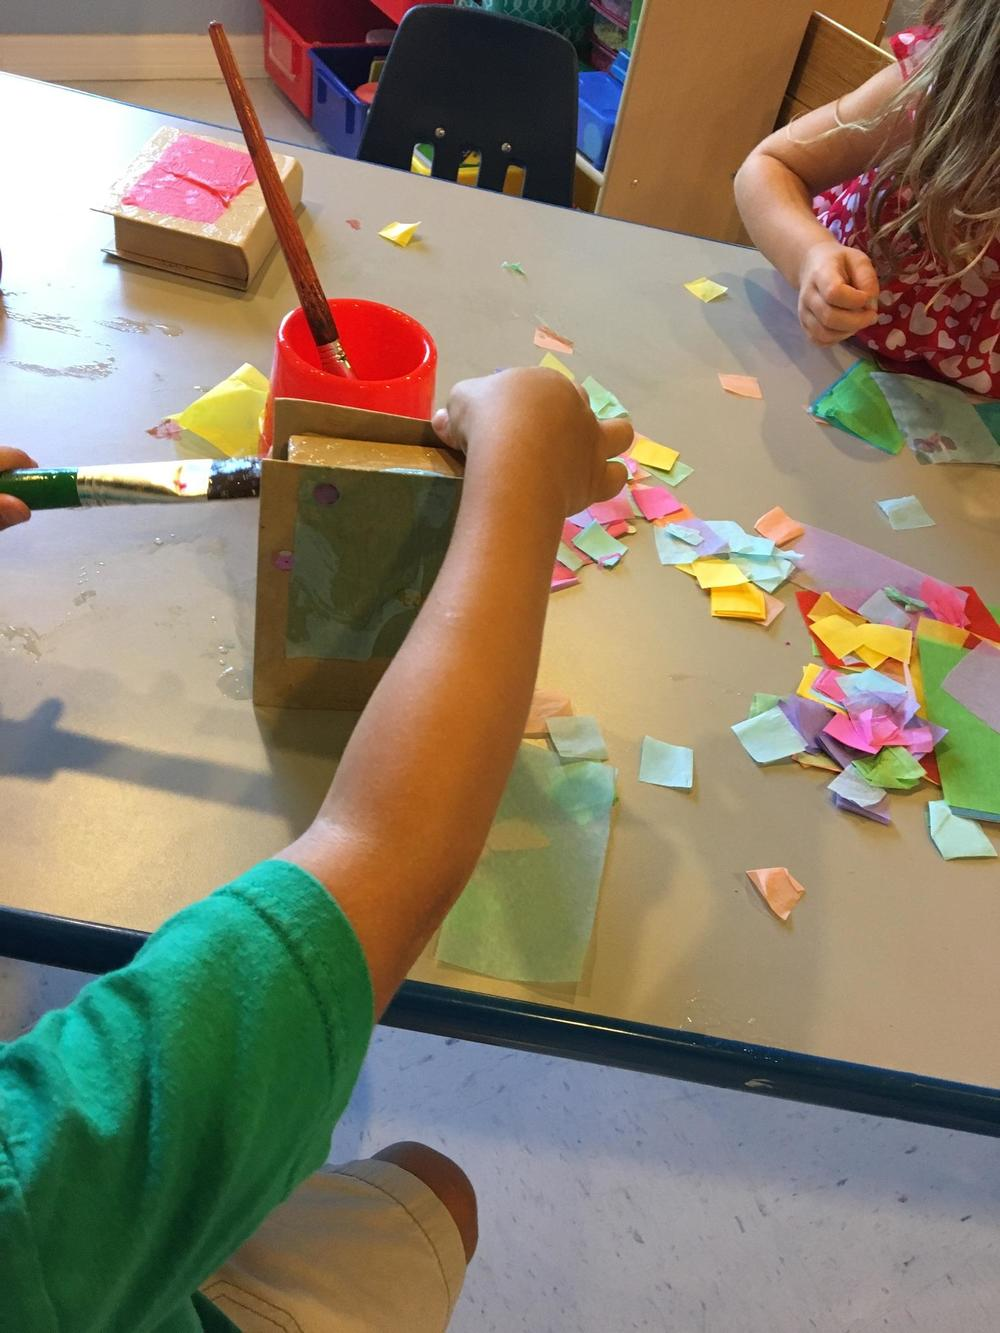 The sensory experience of getting sticky is part of the beauty and challenge of making art!